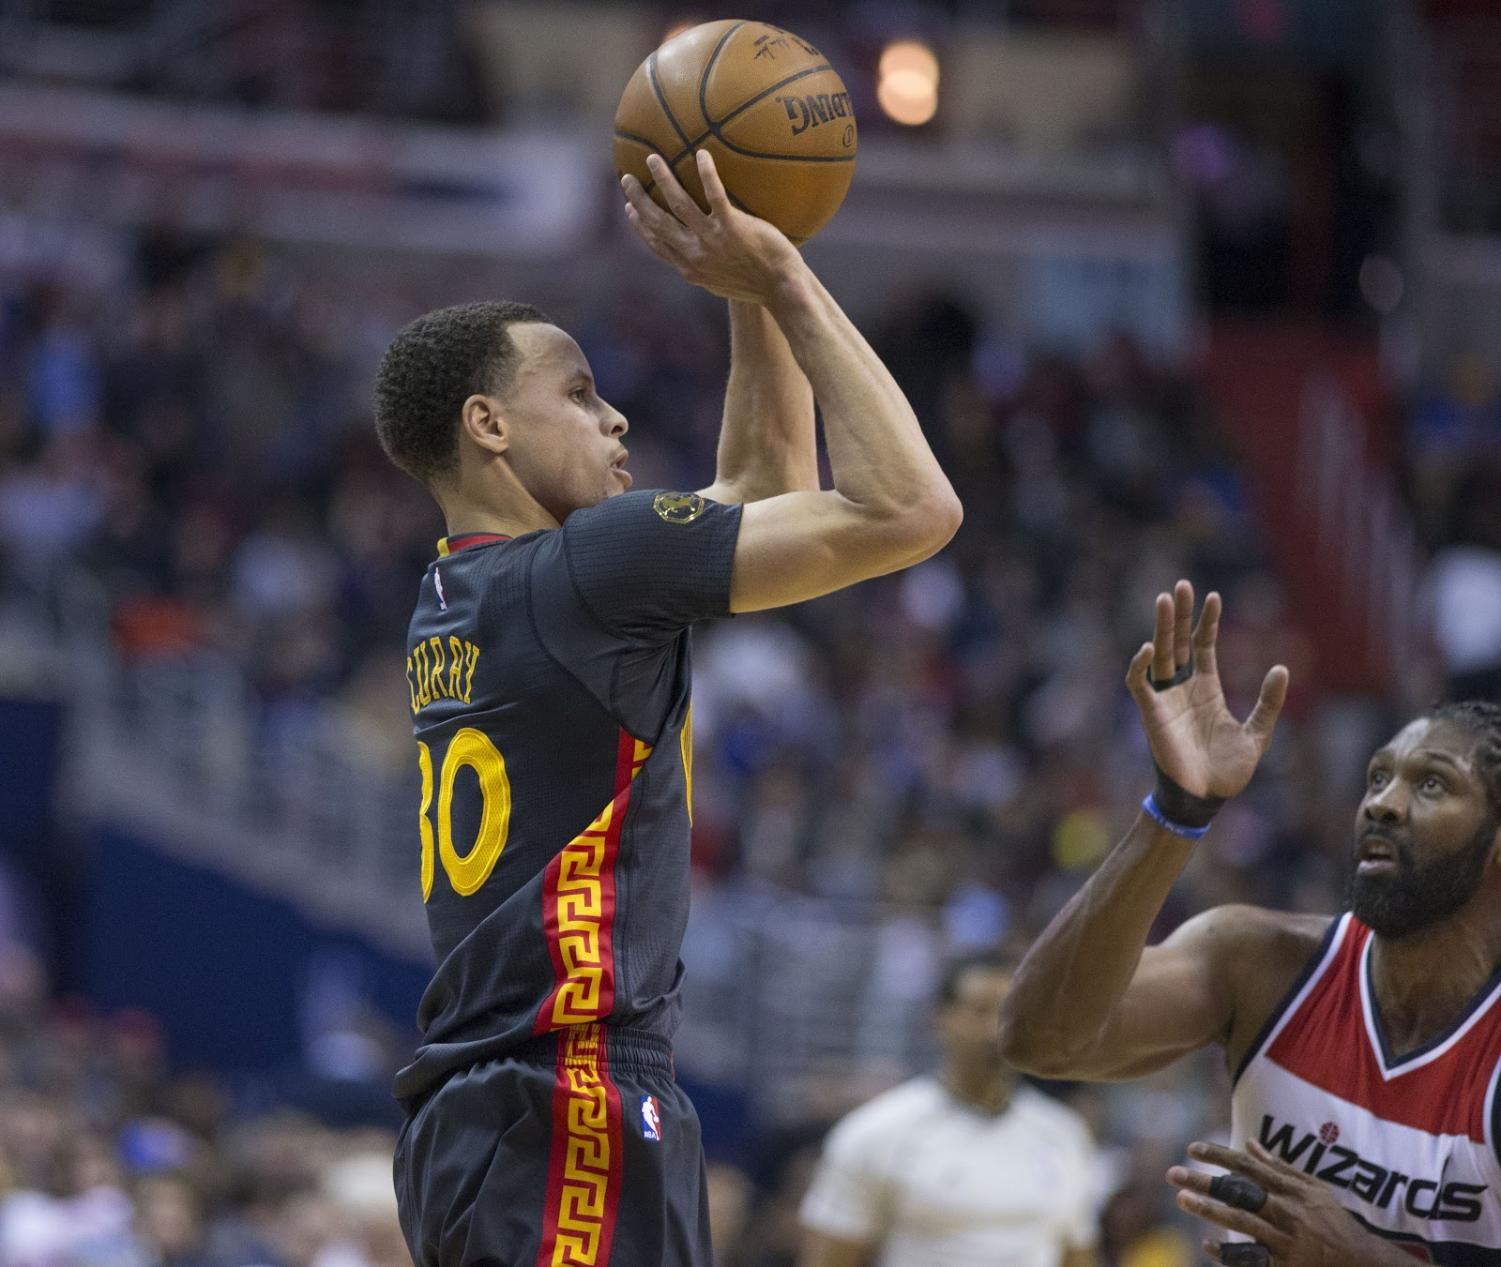 Stephen Curry takes a shot in a game against the Wizards. Curry looks to keep up his great postseason play and lead the Warriors to a third straight title.